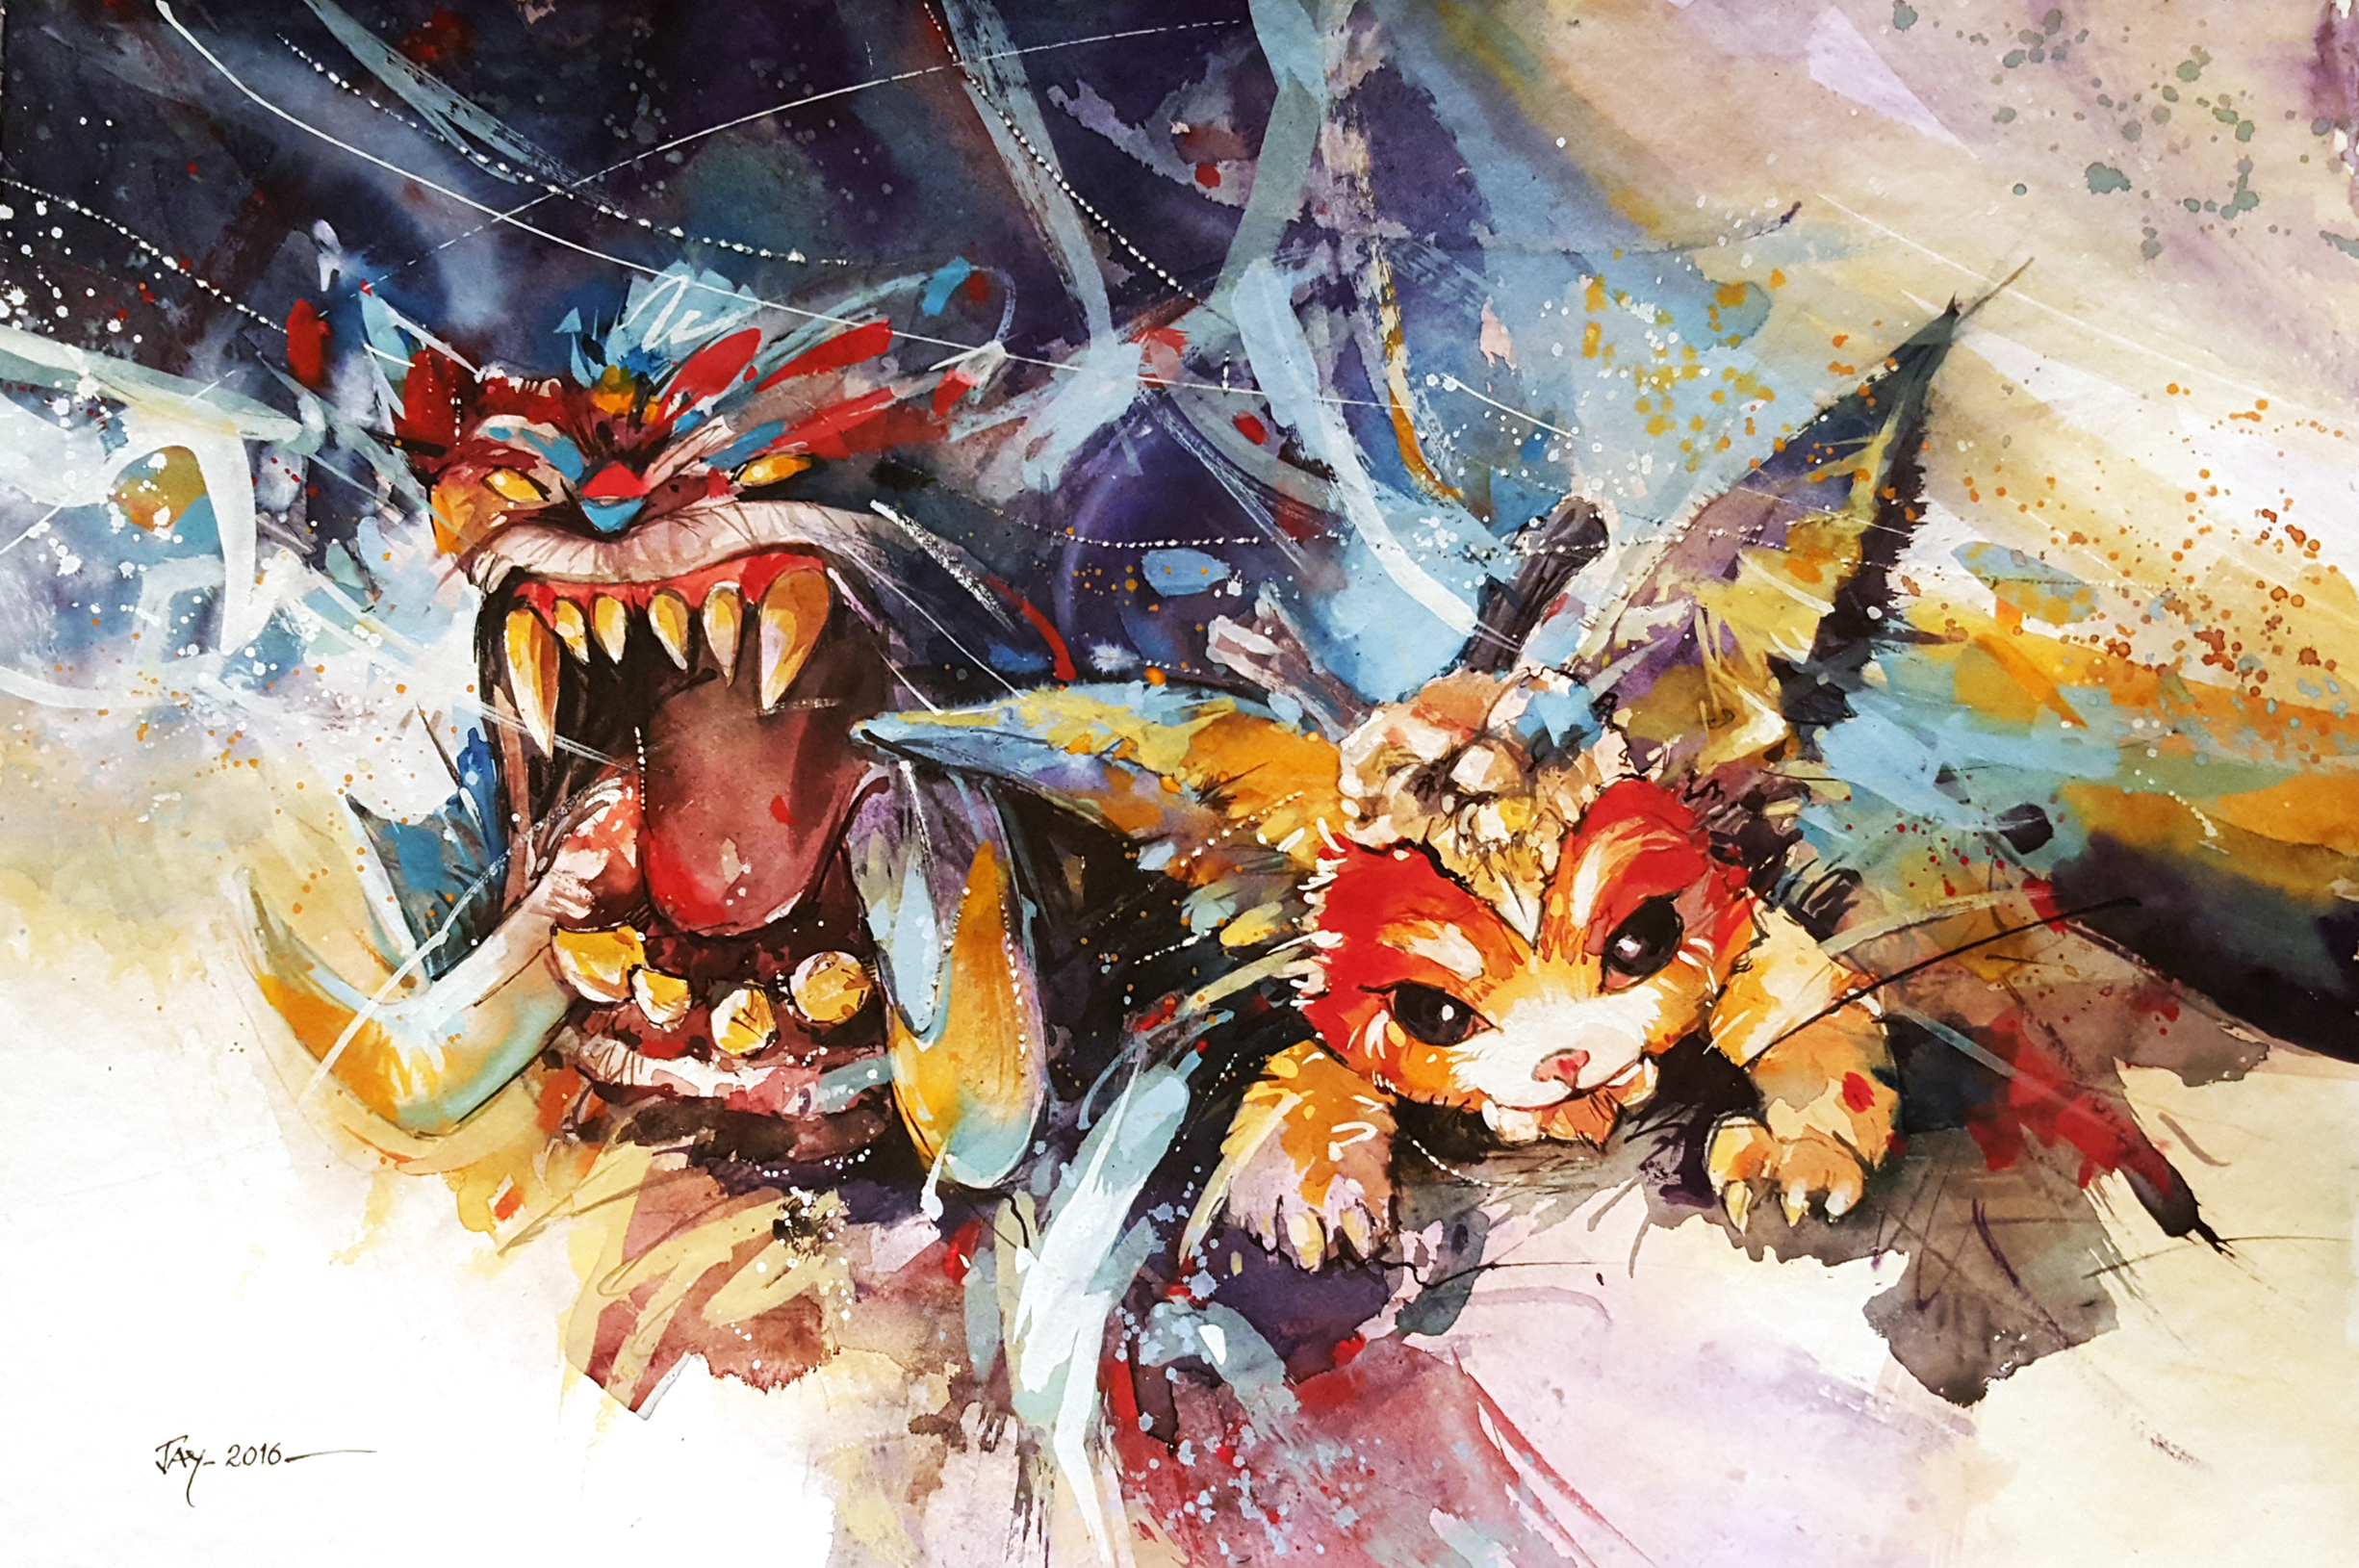 League of legends - Gnar, The Missing Link by ...